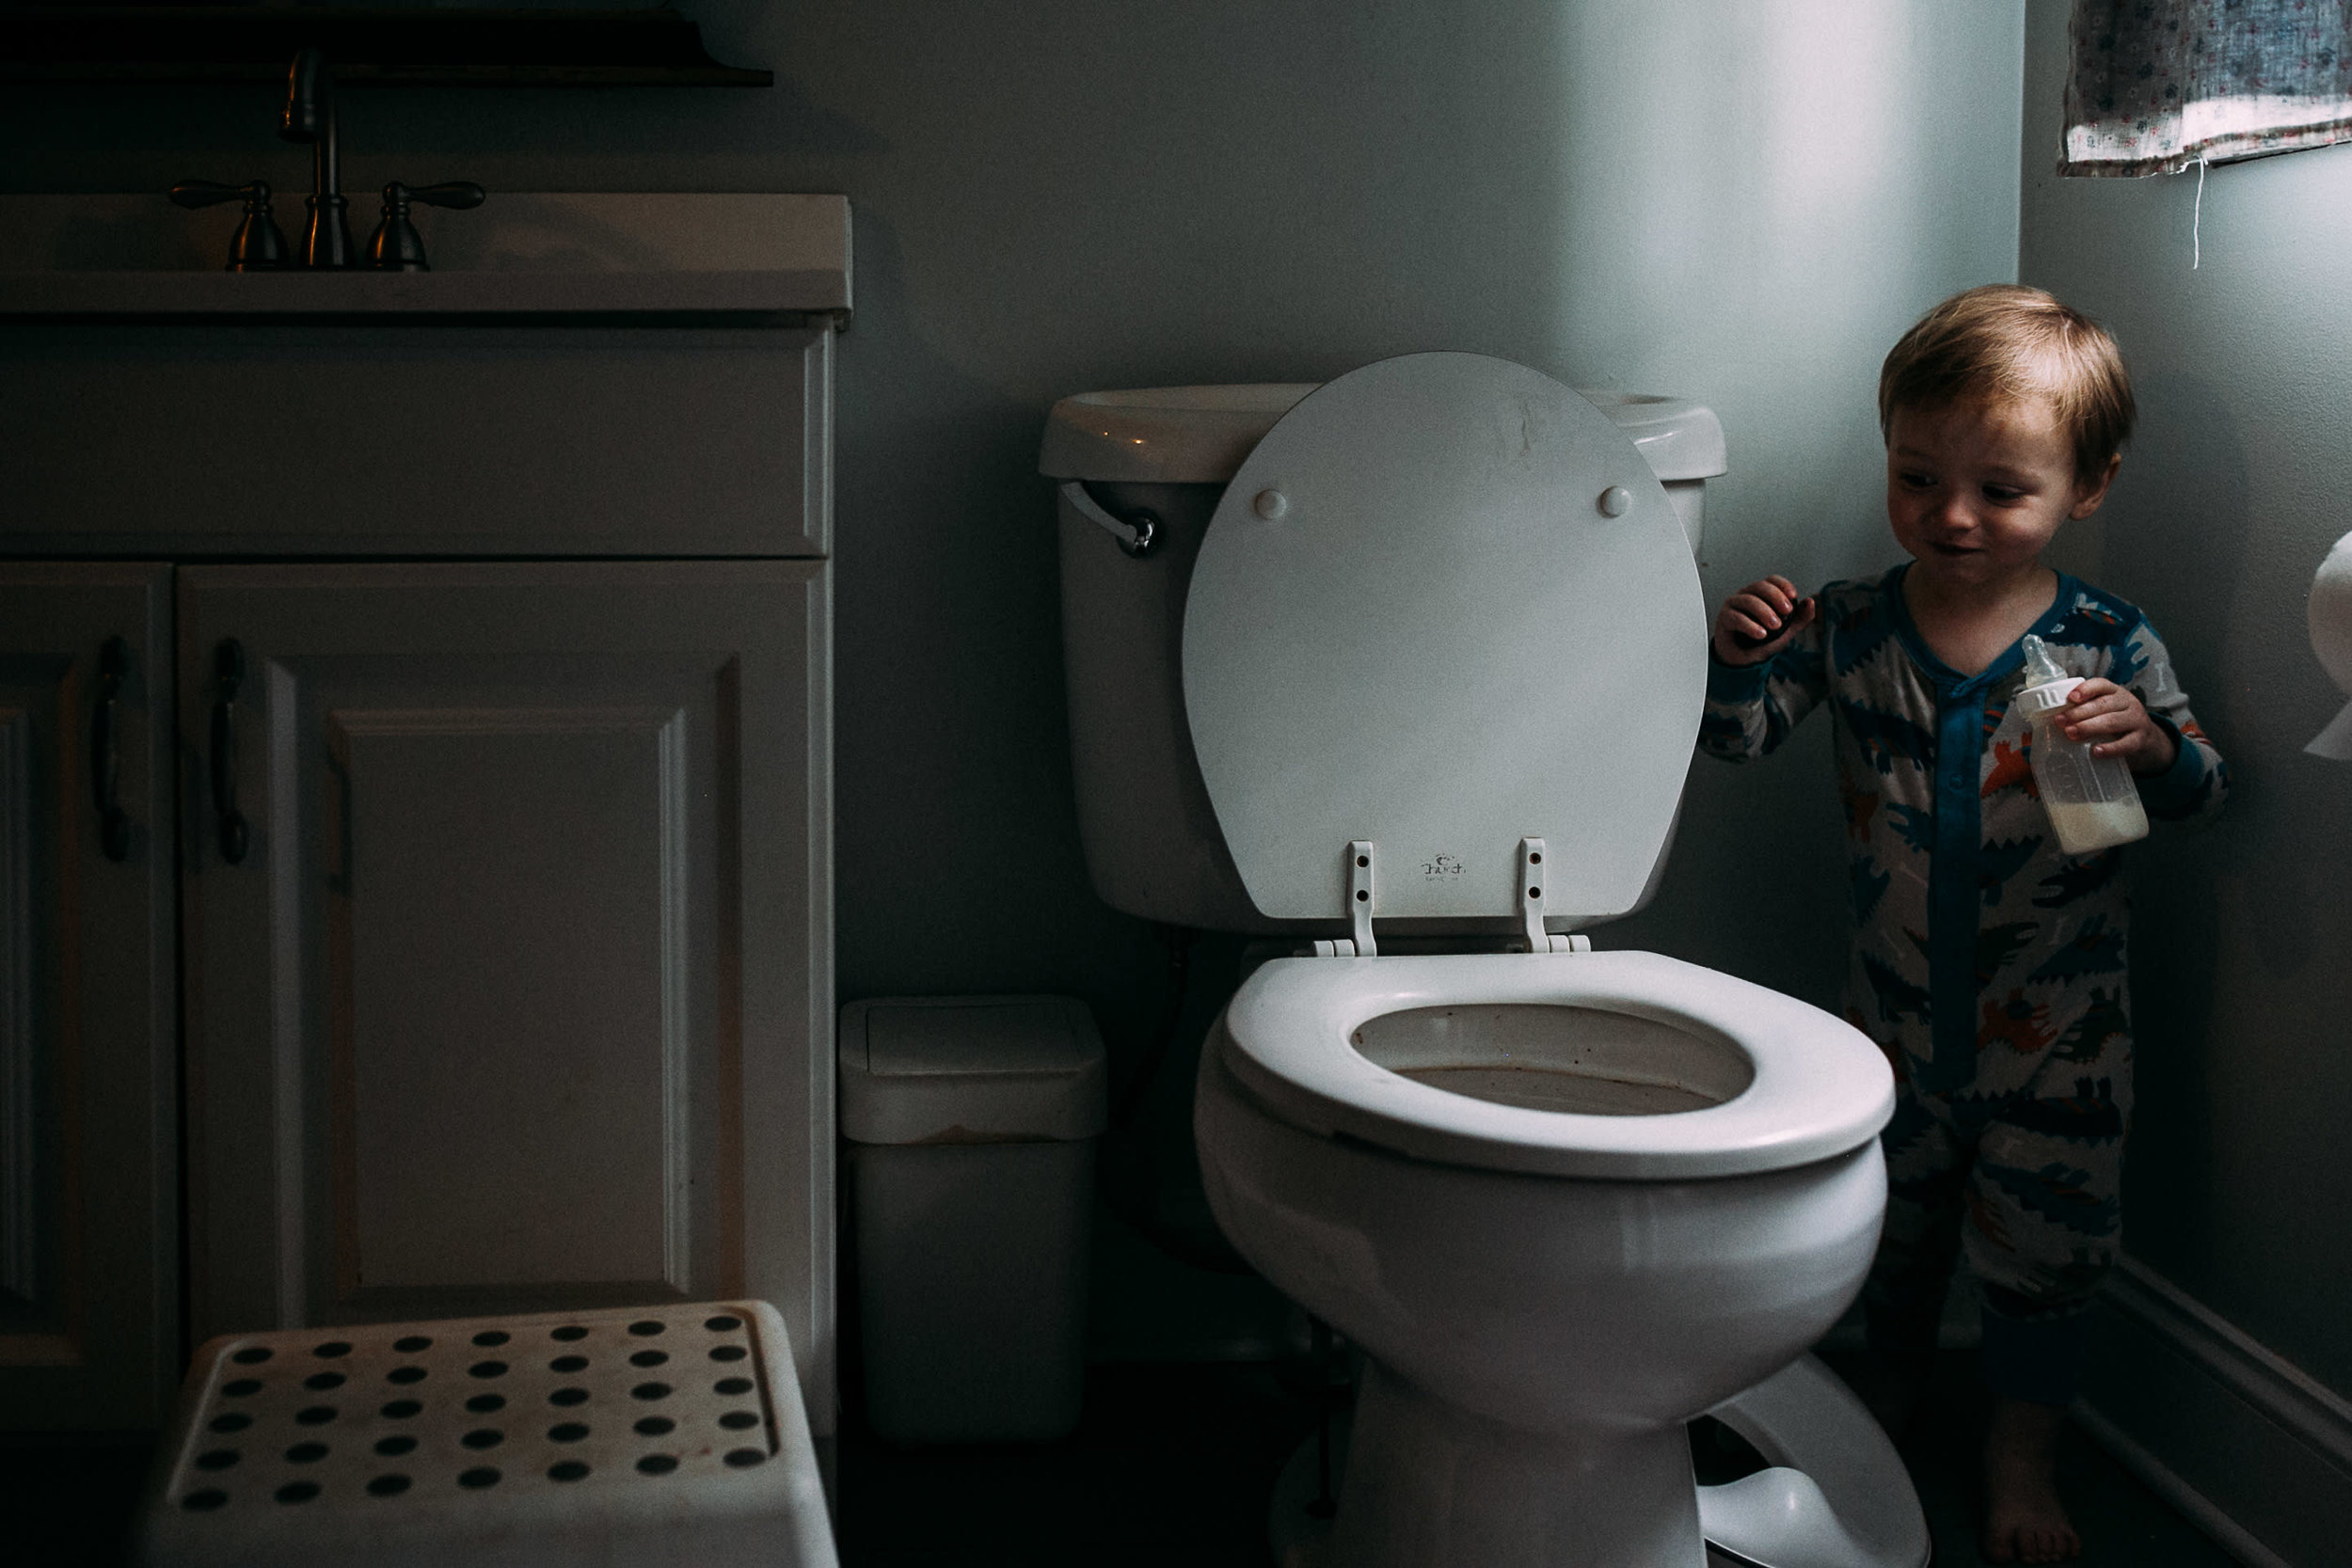 A toddler stands near a dirty toilet holding a bottle